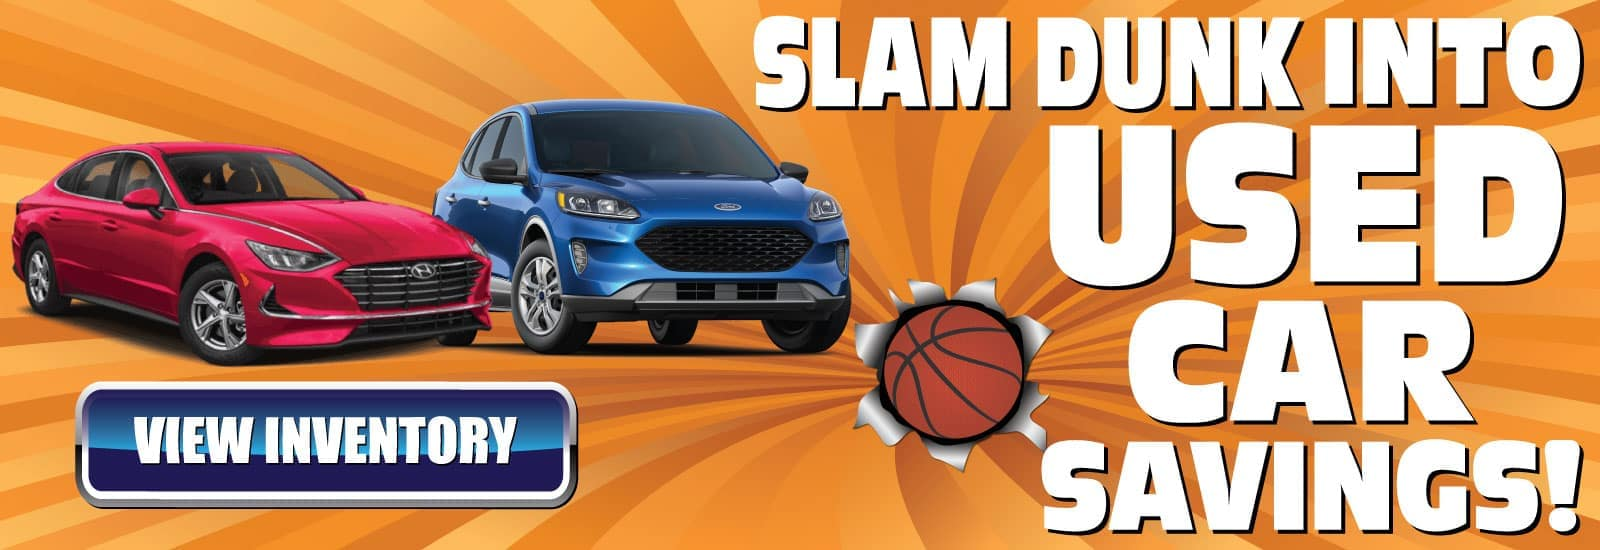 Ray-Skillman-Ford-Slam-Dunk-Into-Used-Car-Savings-Website-1600-x-550-March-2020